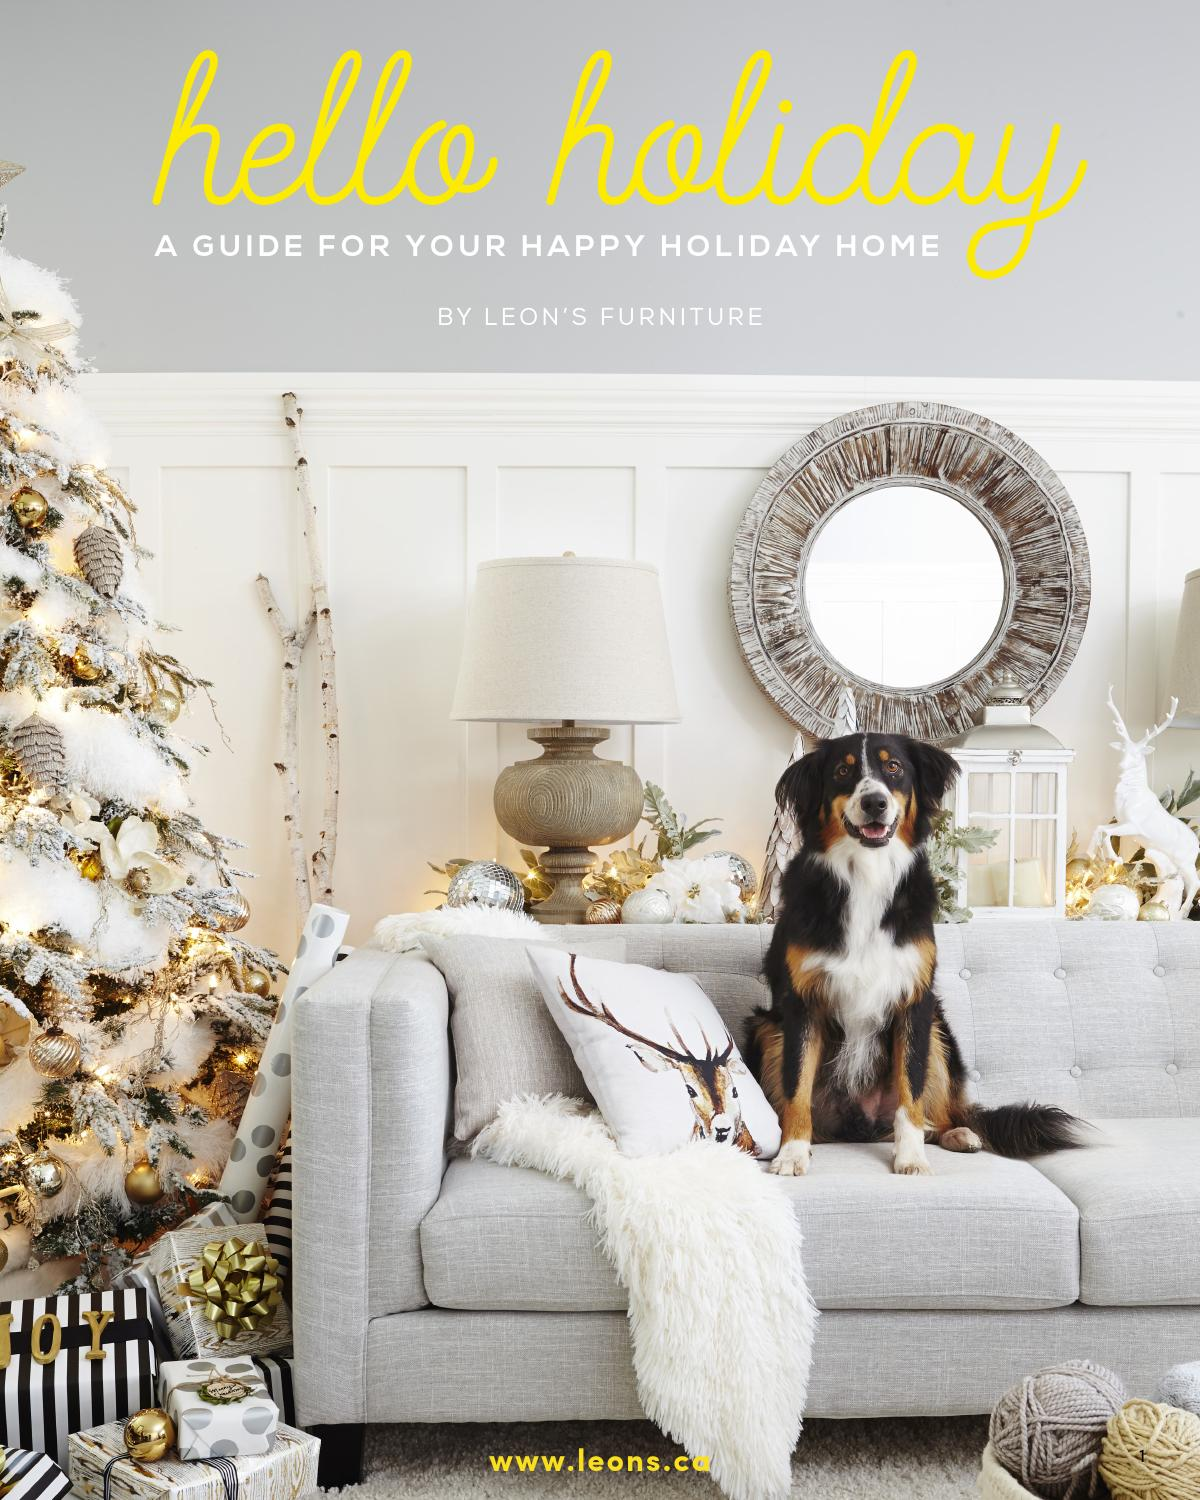 Outstanding Hello Holiday Guide 2015 By Leons Furniture Issuu Dailytribune Chair Design For Home Dailytribuneorg